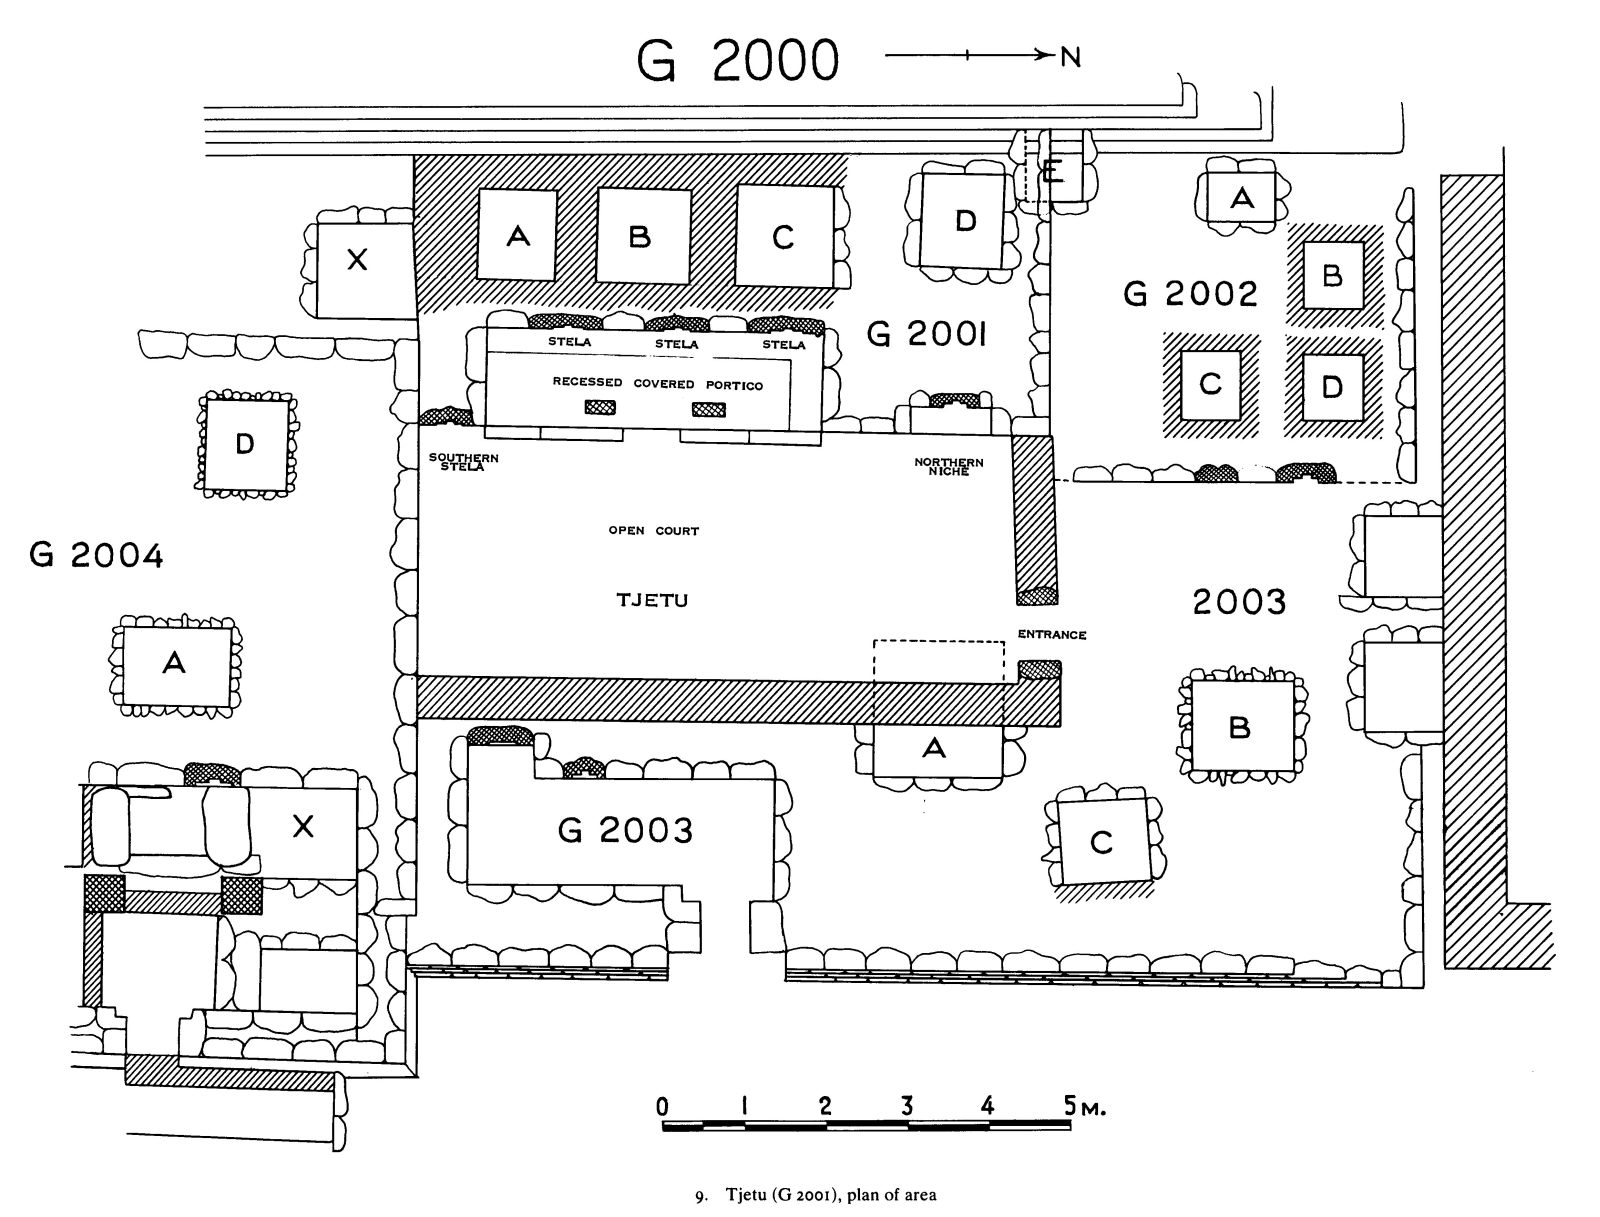 Maps and plans: G 2001, Plan, with positions of G 2000, G 2002, G 2003, G 2004